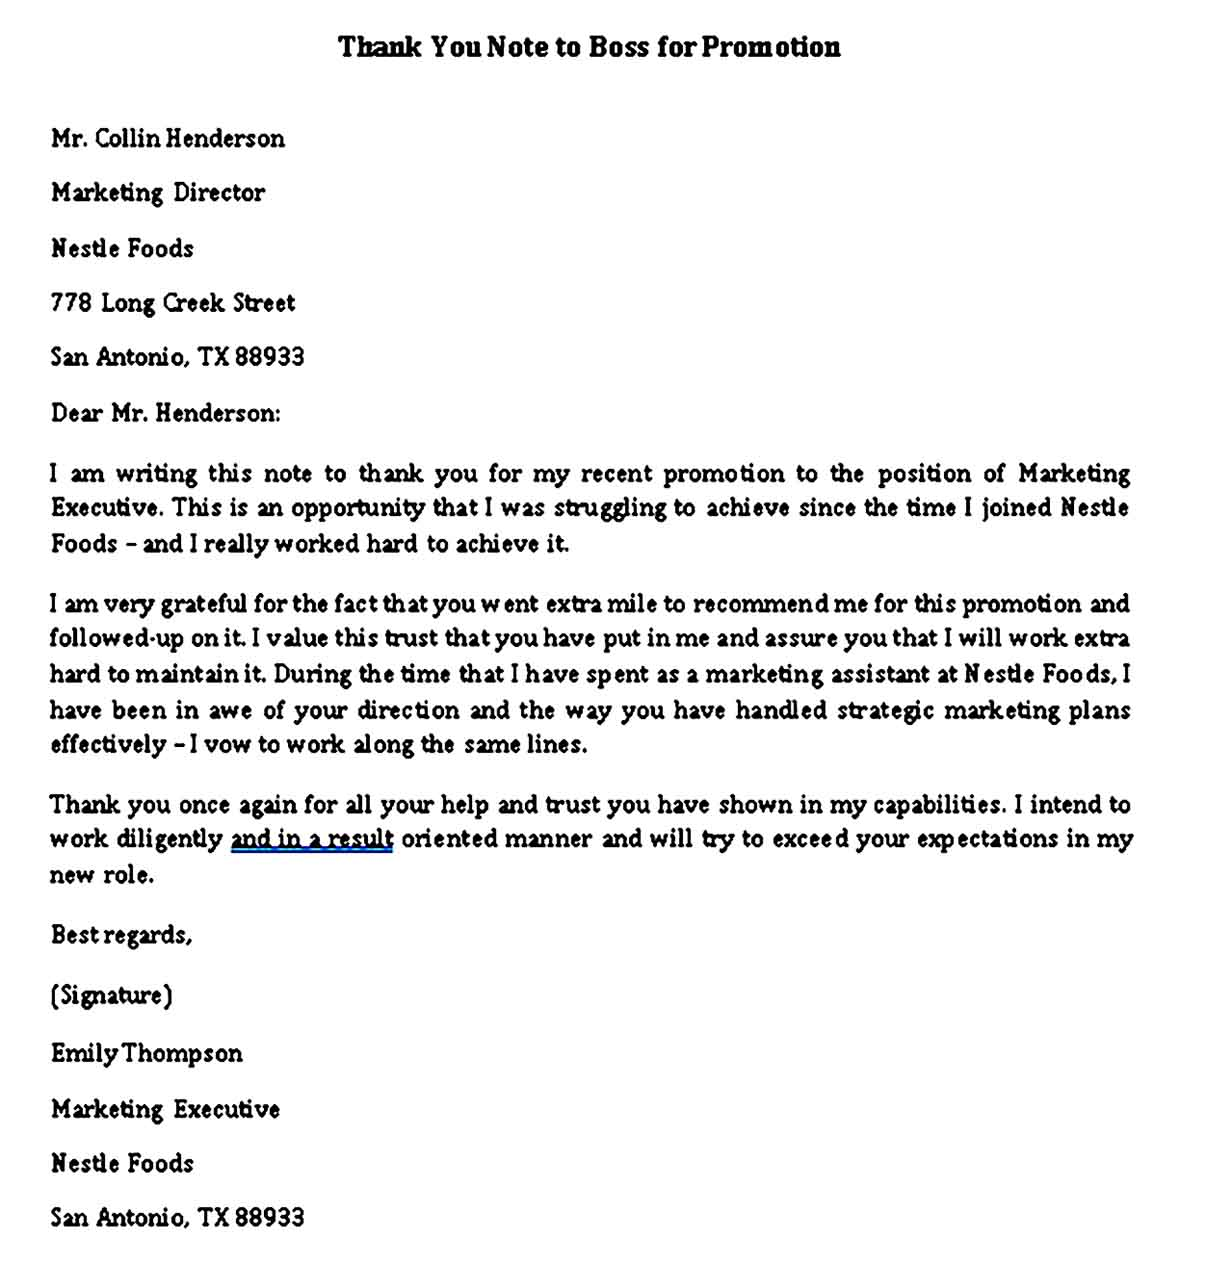 thank you note to boss for promotion